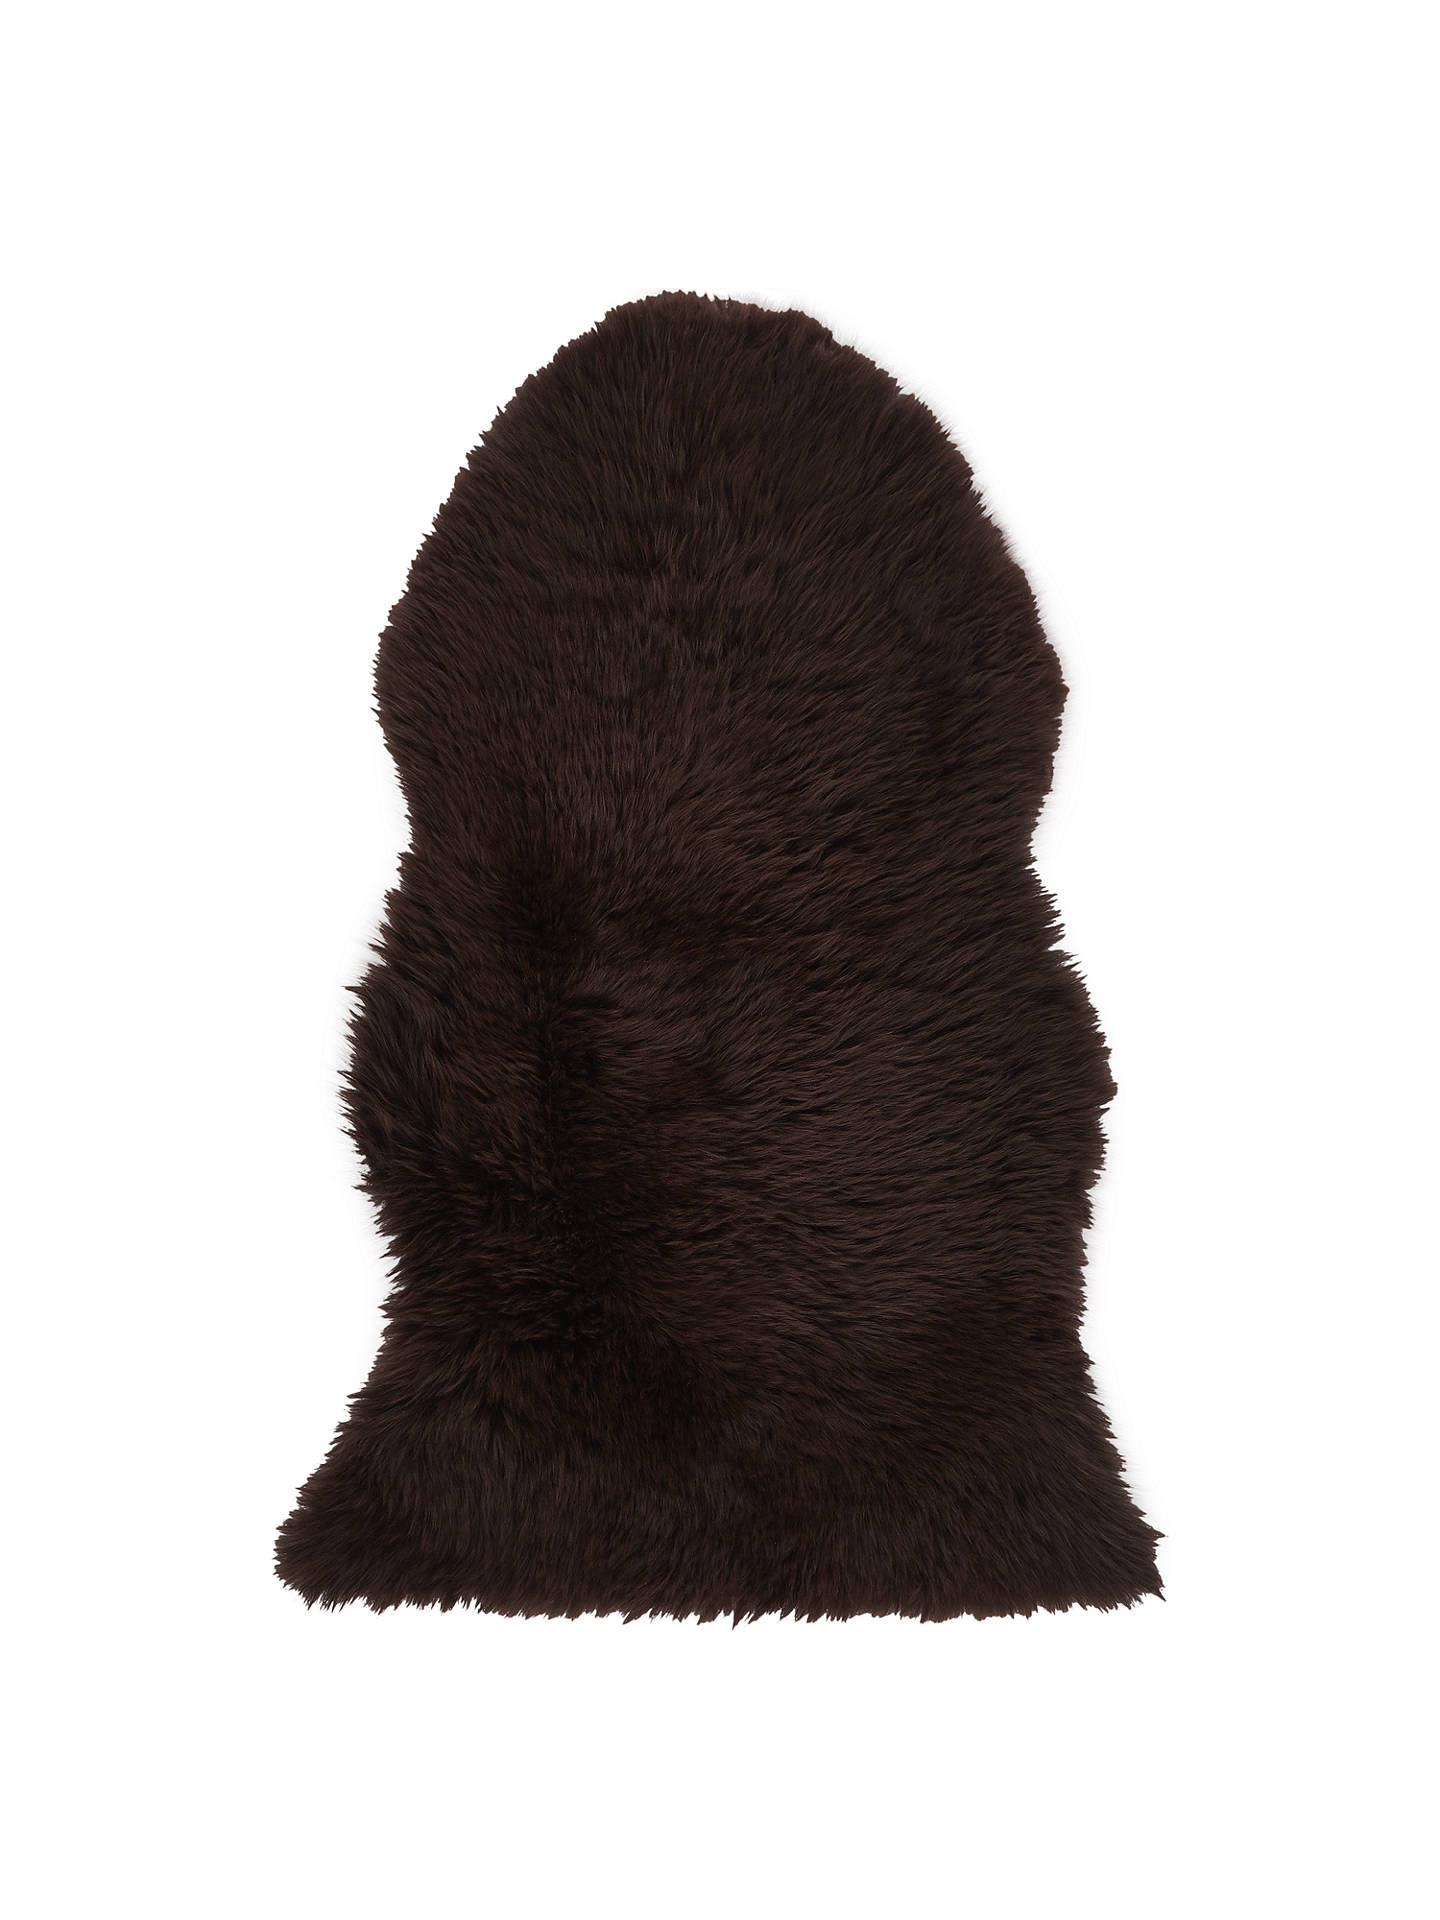 John Lewis Single Luxury Sheepskin Chocolate Online At Johnlewis Com